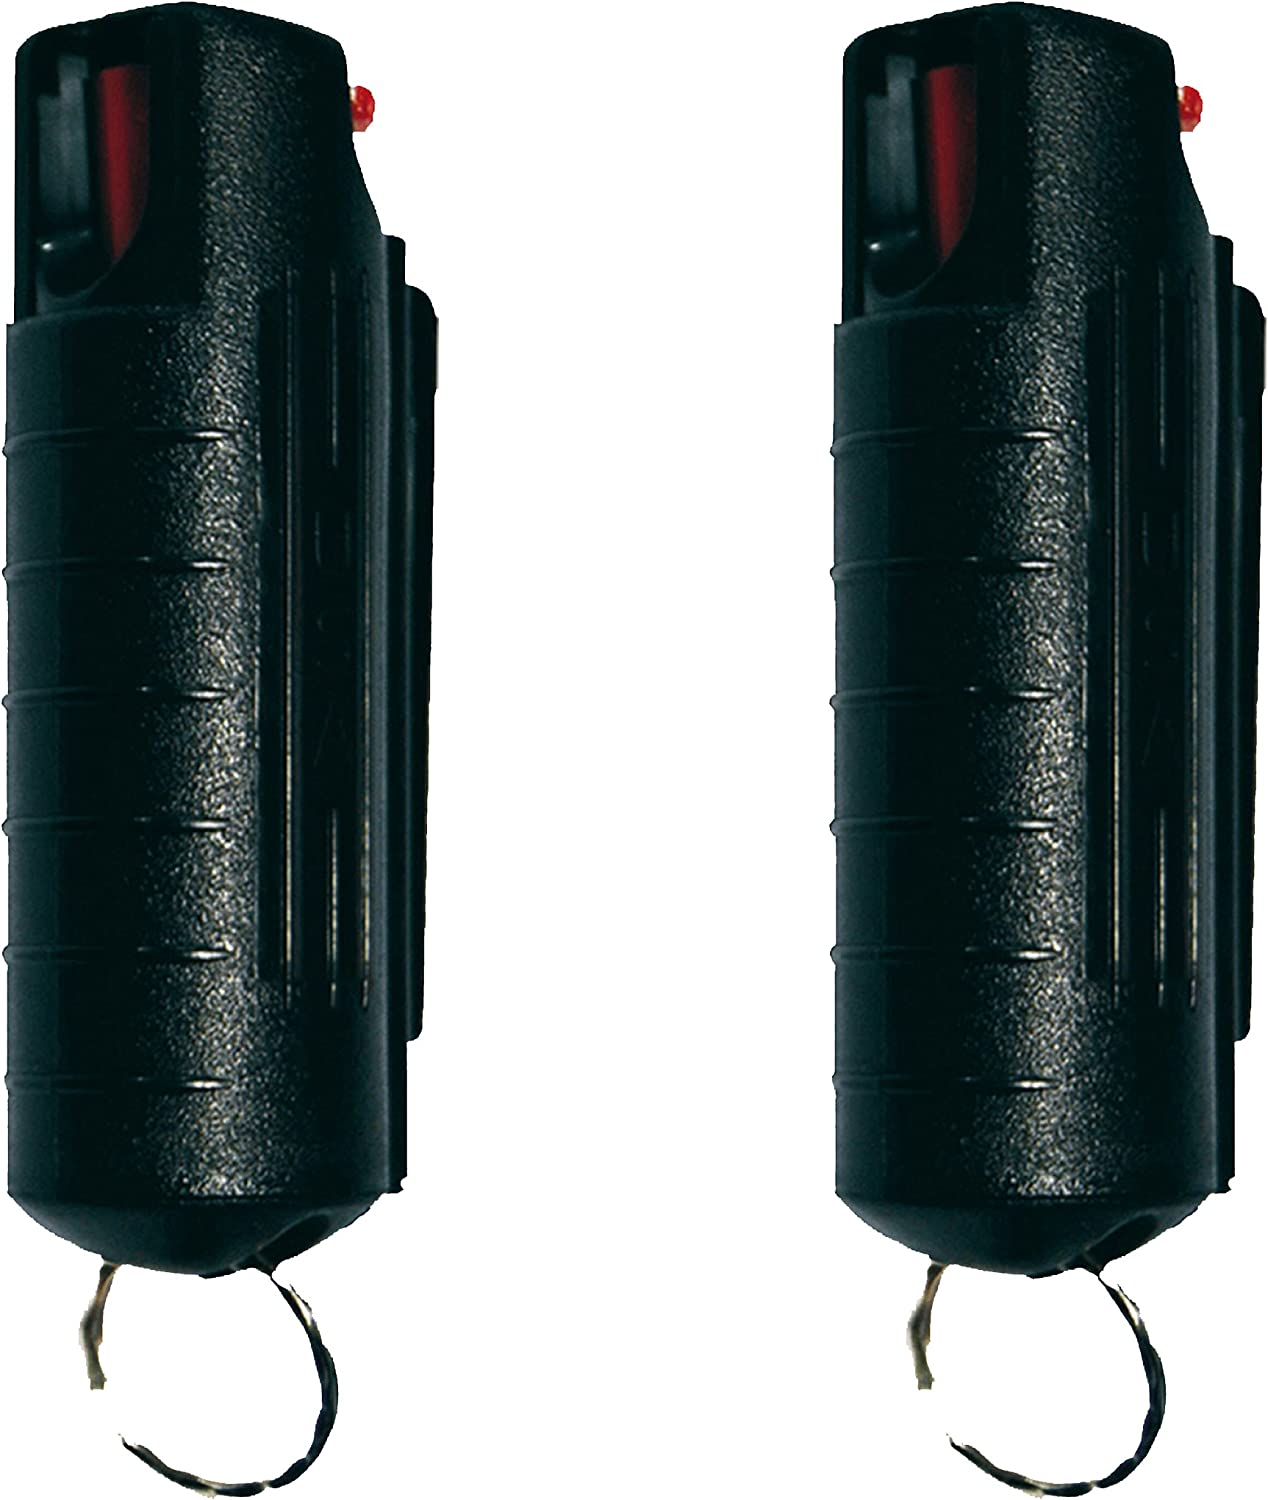 Ranking TOP2 Wildfire 18% 1 2 Oz Hard Case Choice or - Pa Spray Max 59% OFF Pepper of